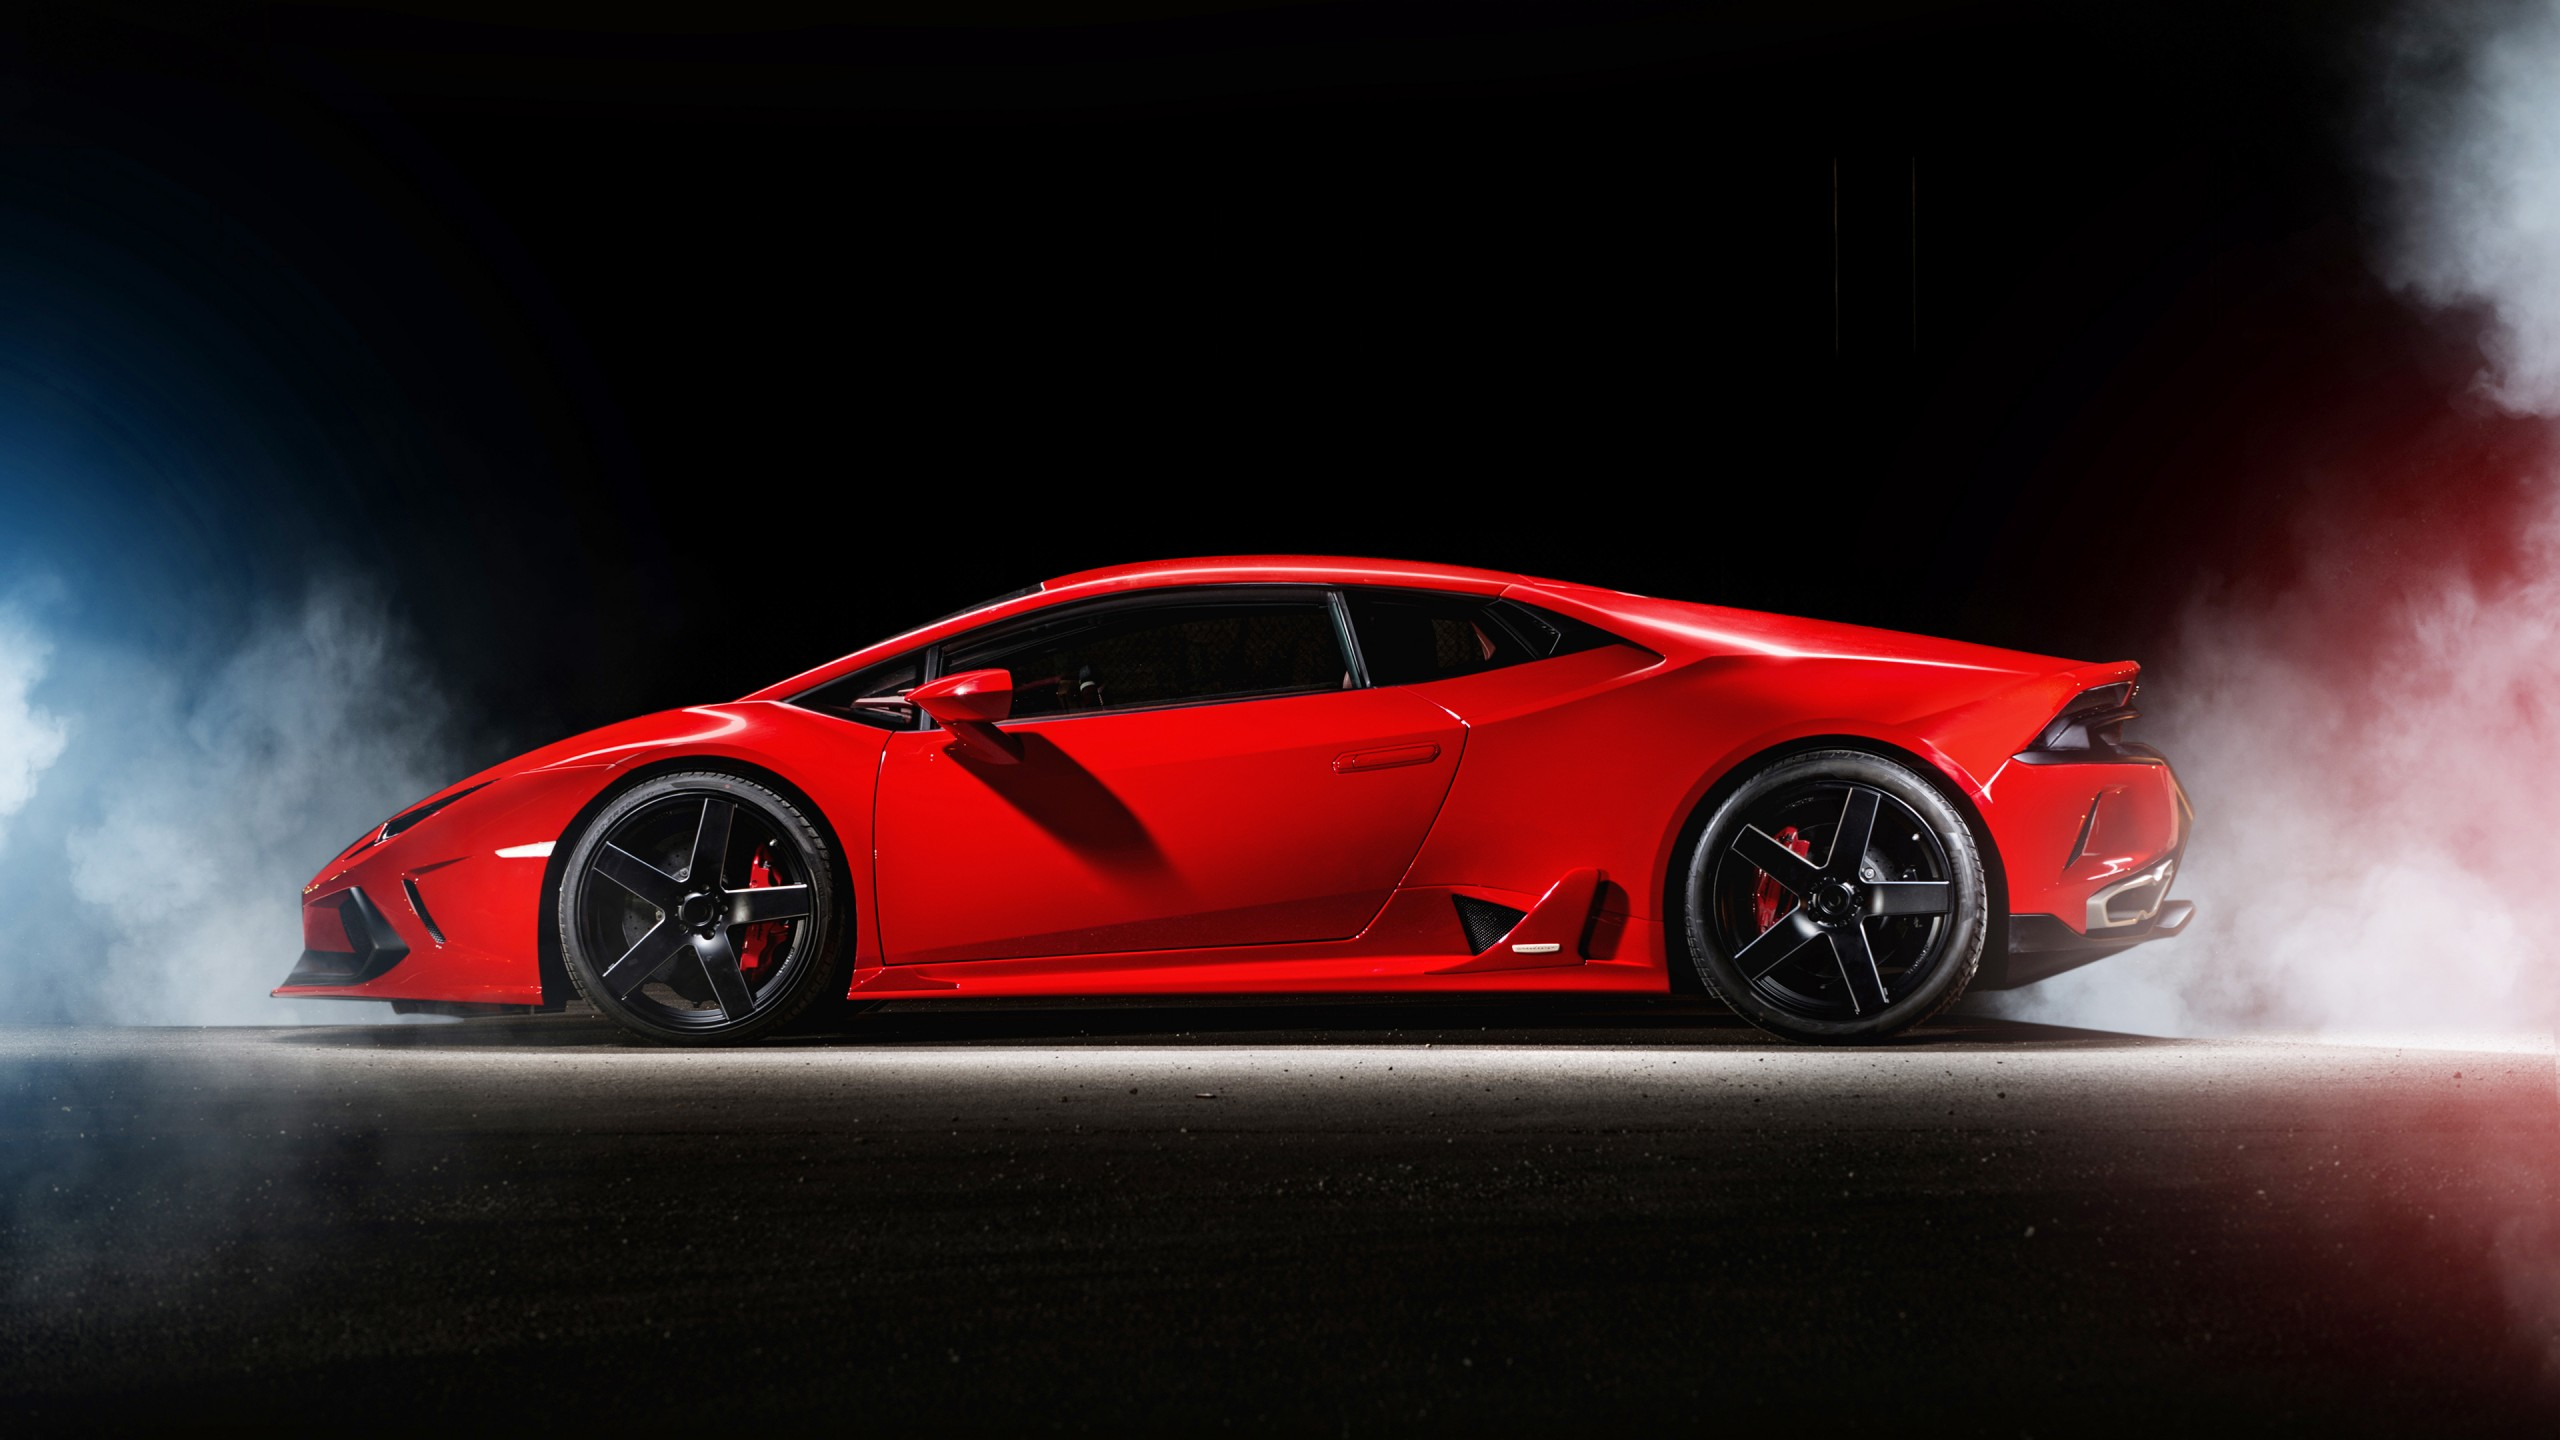 2015 Ares Design Lamborghini Huracan 3 Wallpaper  HD Car Wallpapers